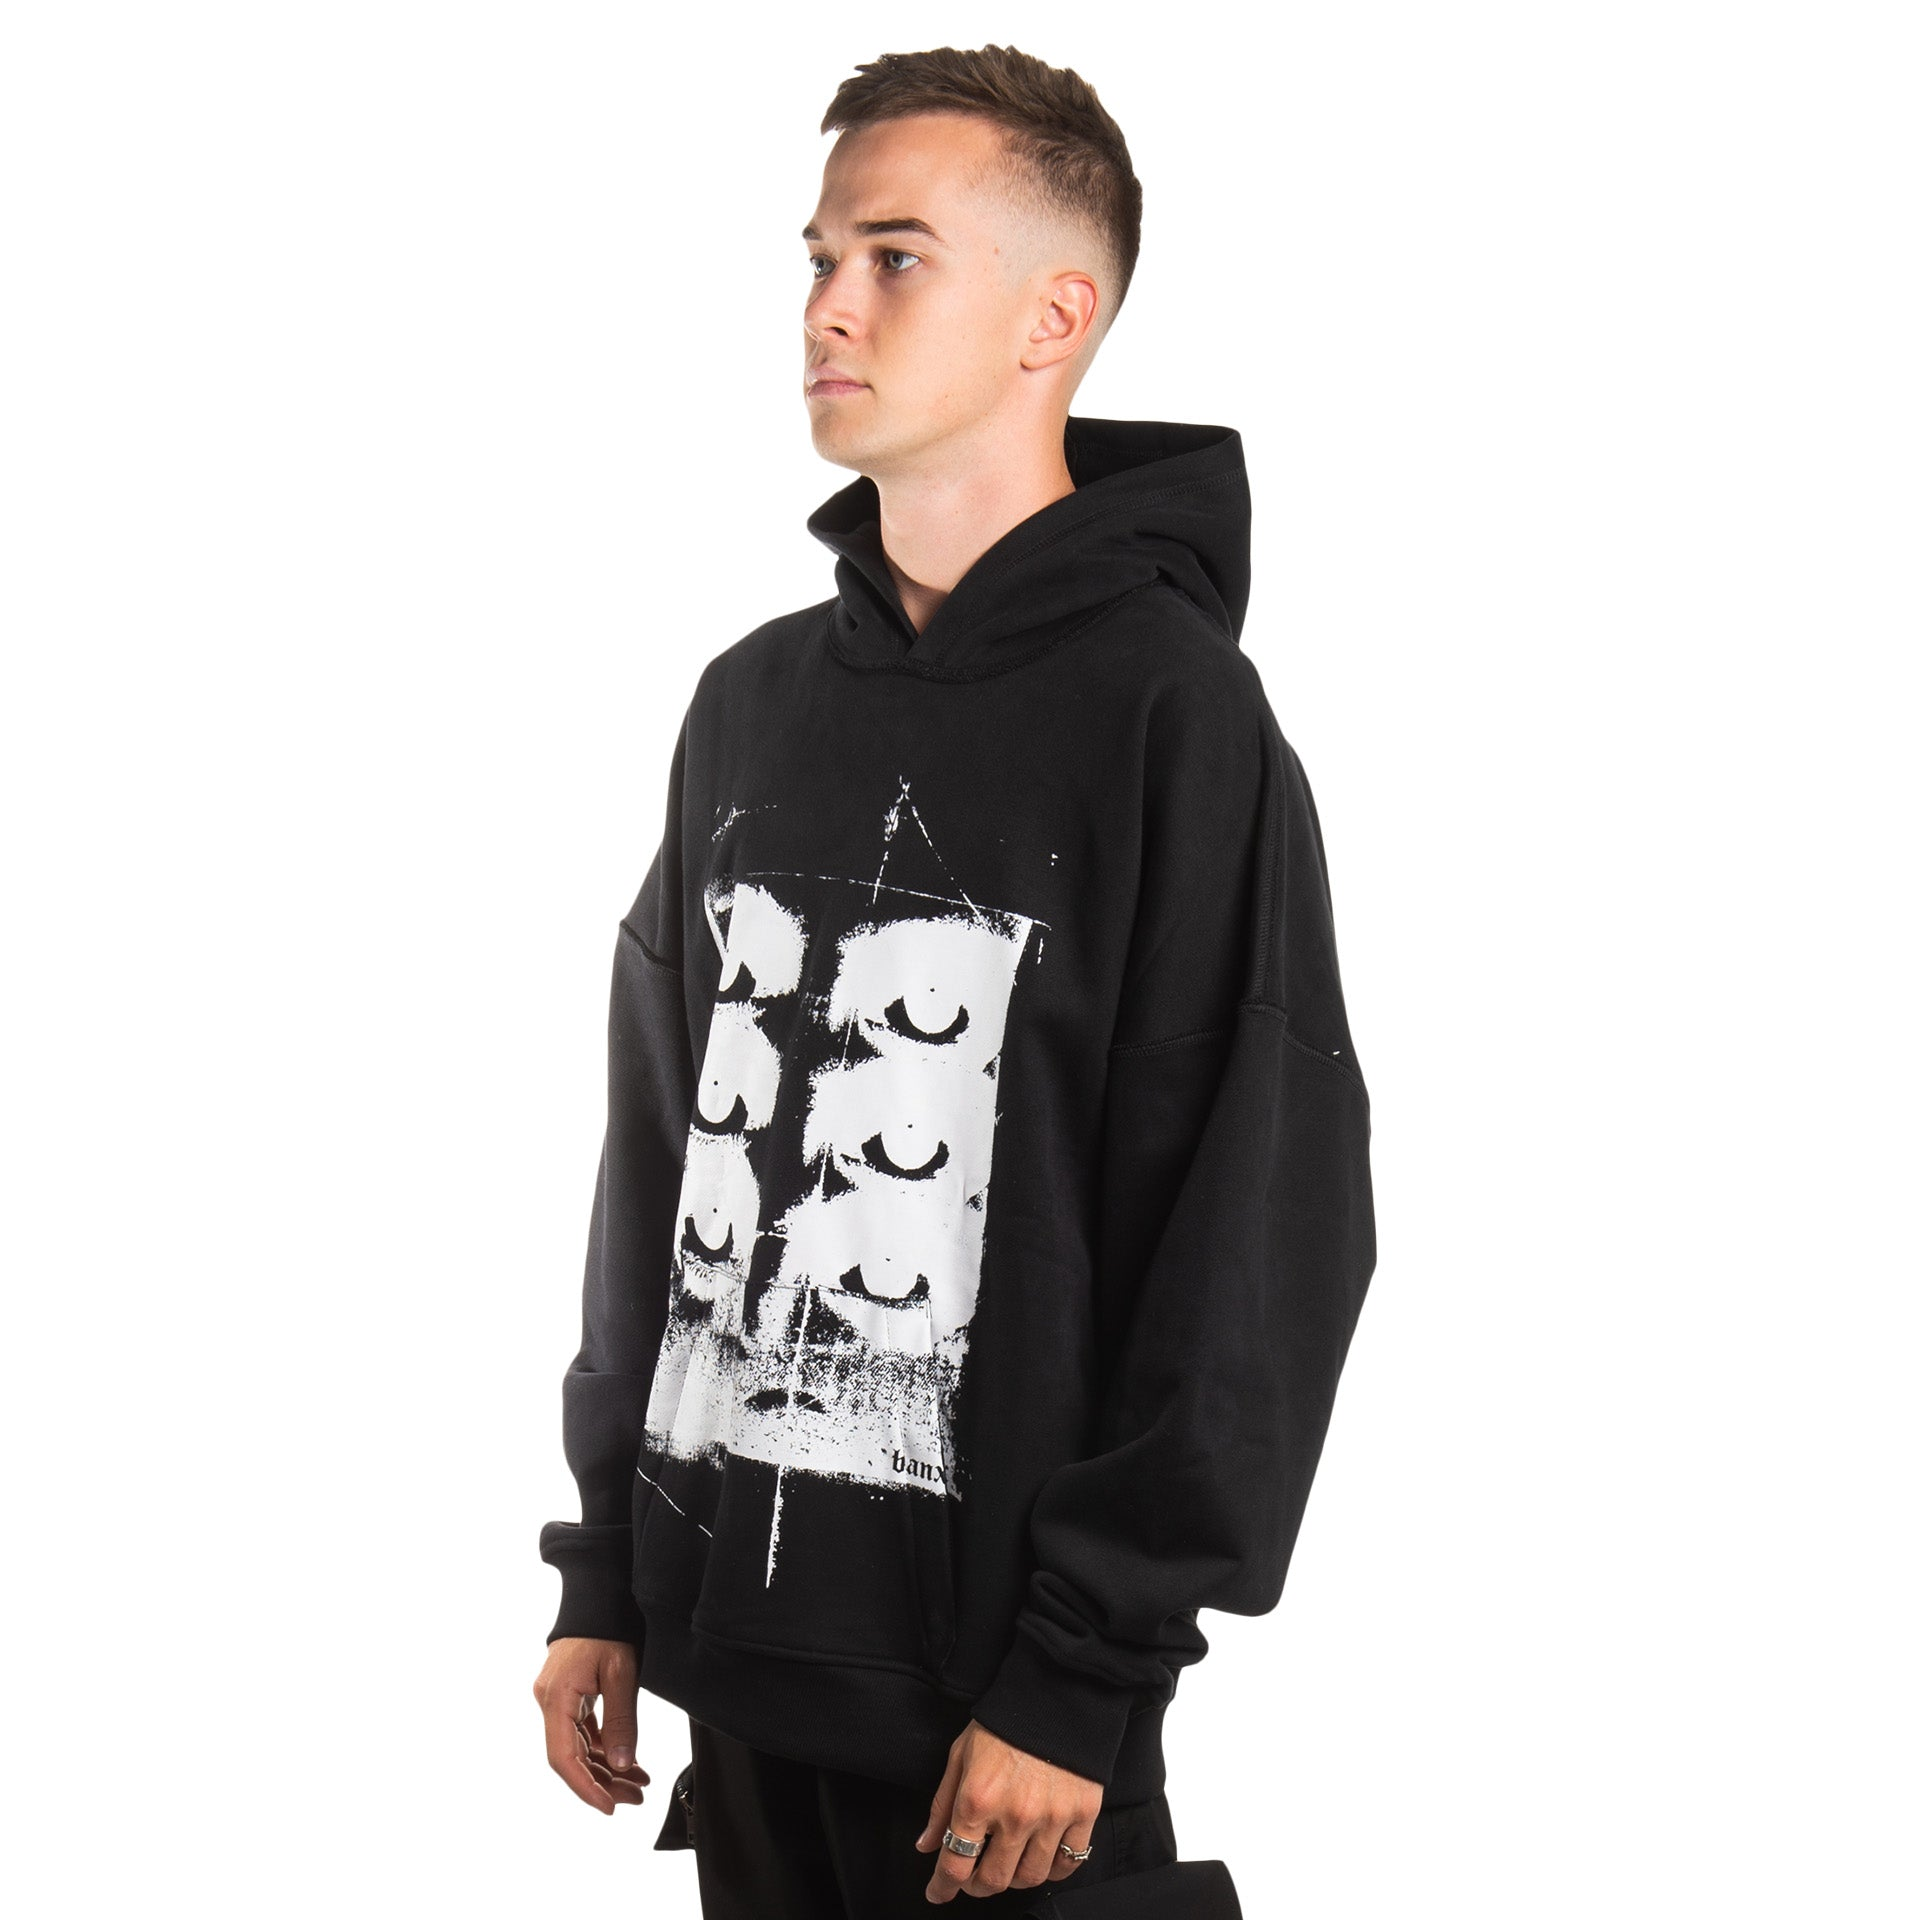 """SIX YEARS OF THE VISION"" Oversized Hoodie - BLACK"